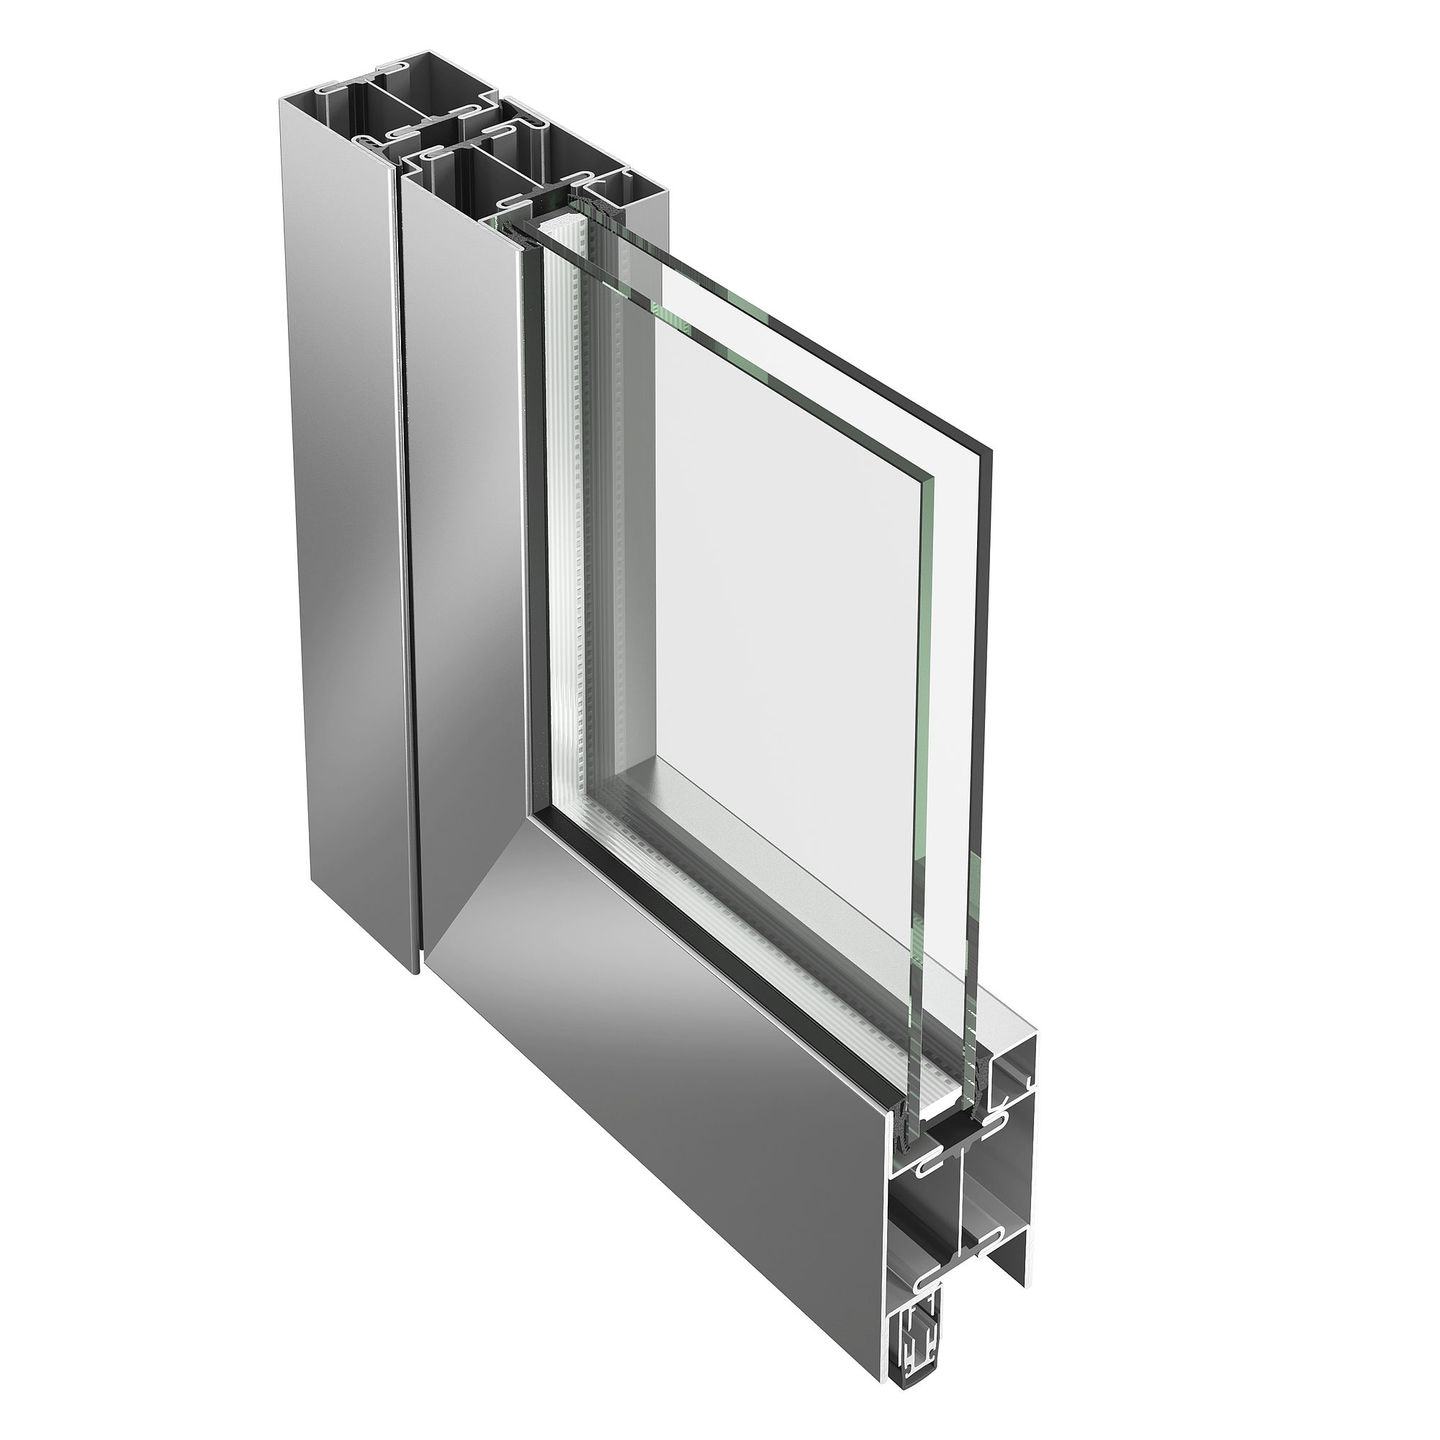 Janisol steel and stainless steel doors